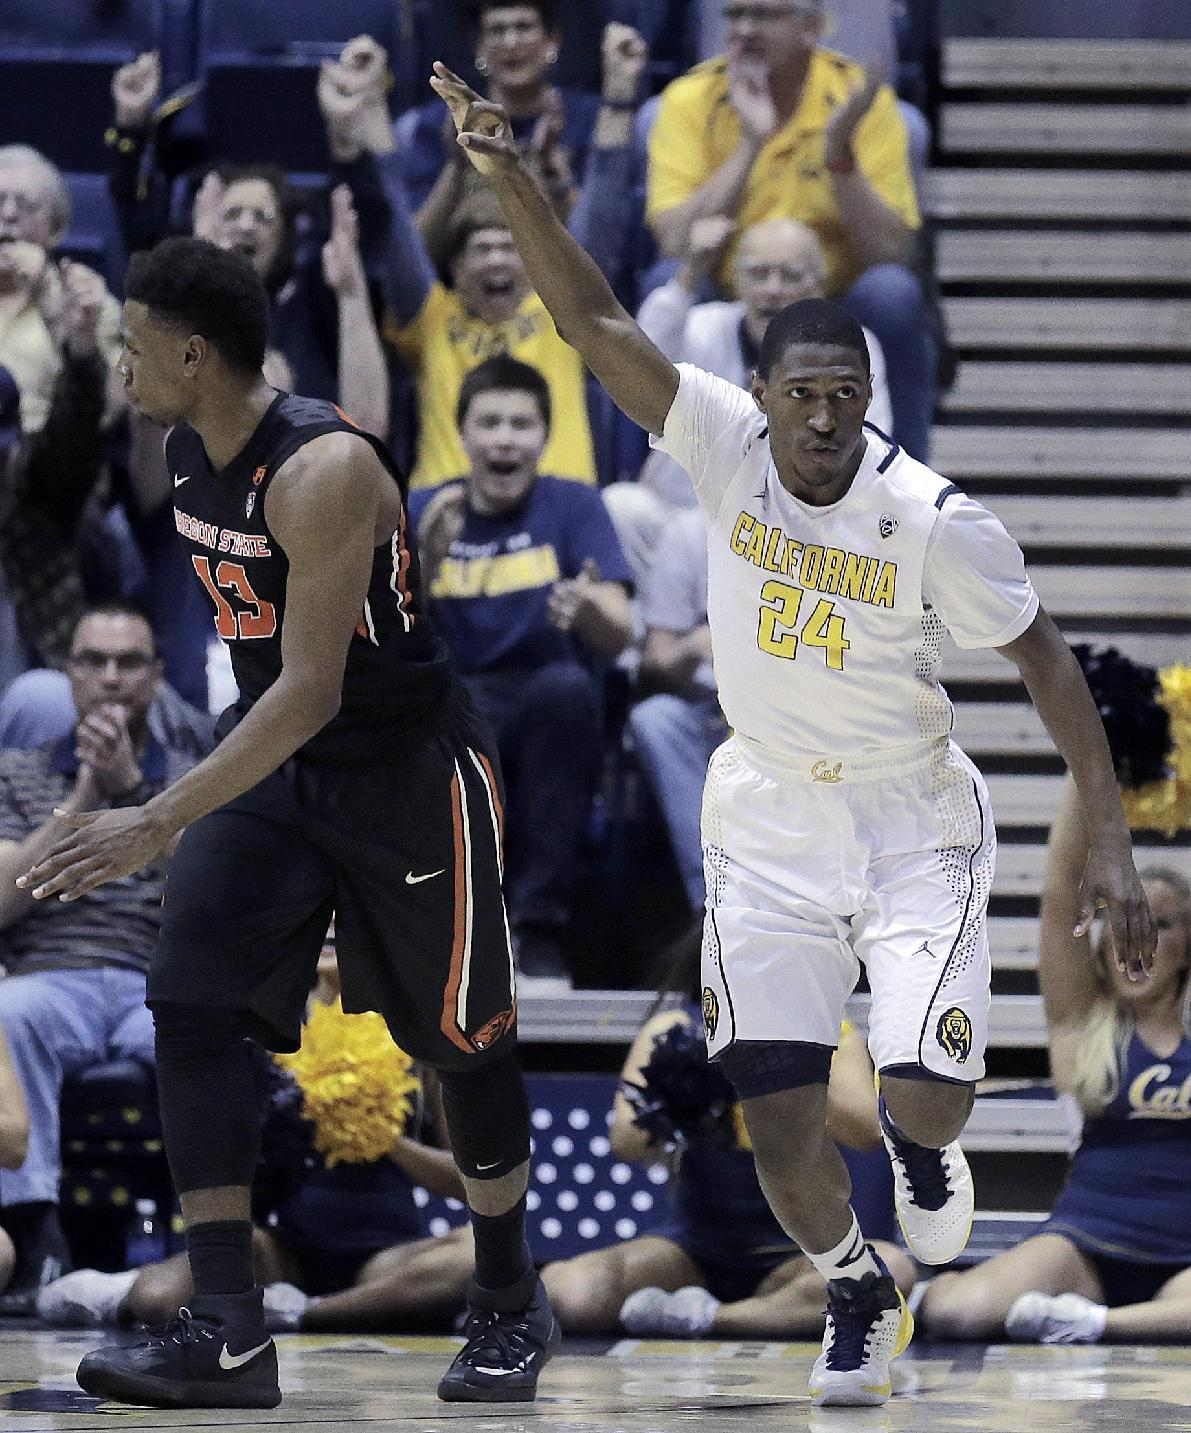 Cal's big run lifts Bears past Oregon State 73-56